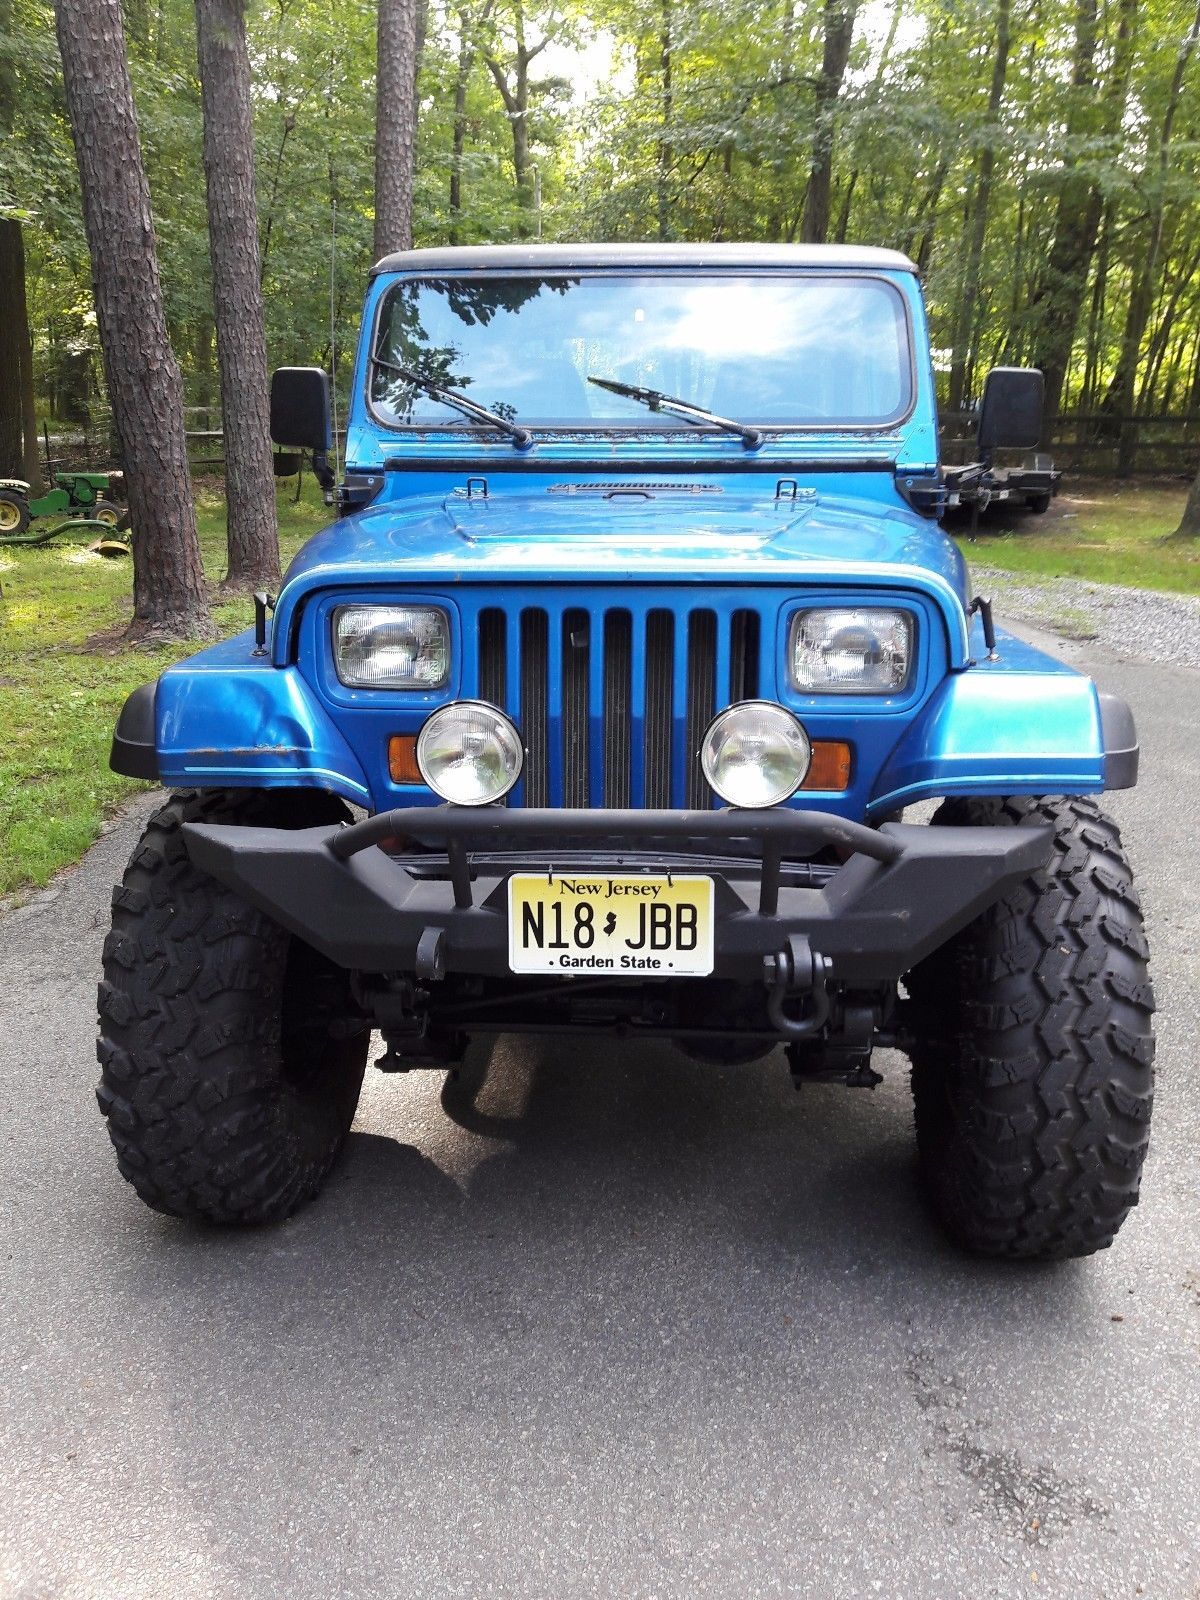 Ebay 1993 Jeep Wrangler Yj 1993 Jeep Wrangler Yj Lifted On 37 Super Swampers Wife Says Sell Jeep Jeeplife Jeep Wrangler Yj Jeep Wrangler Jeep Lover